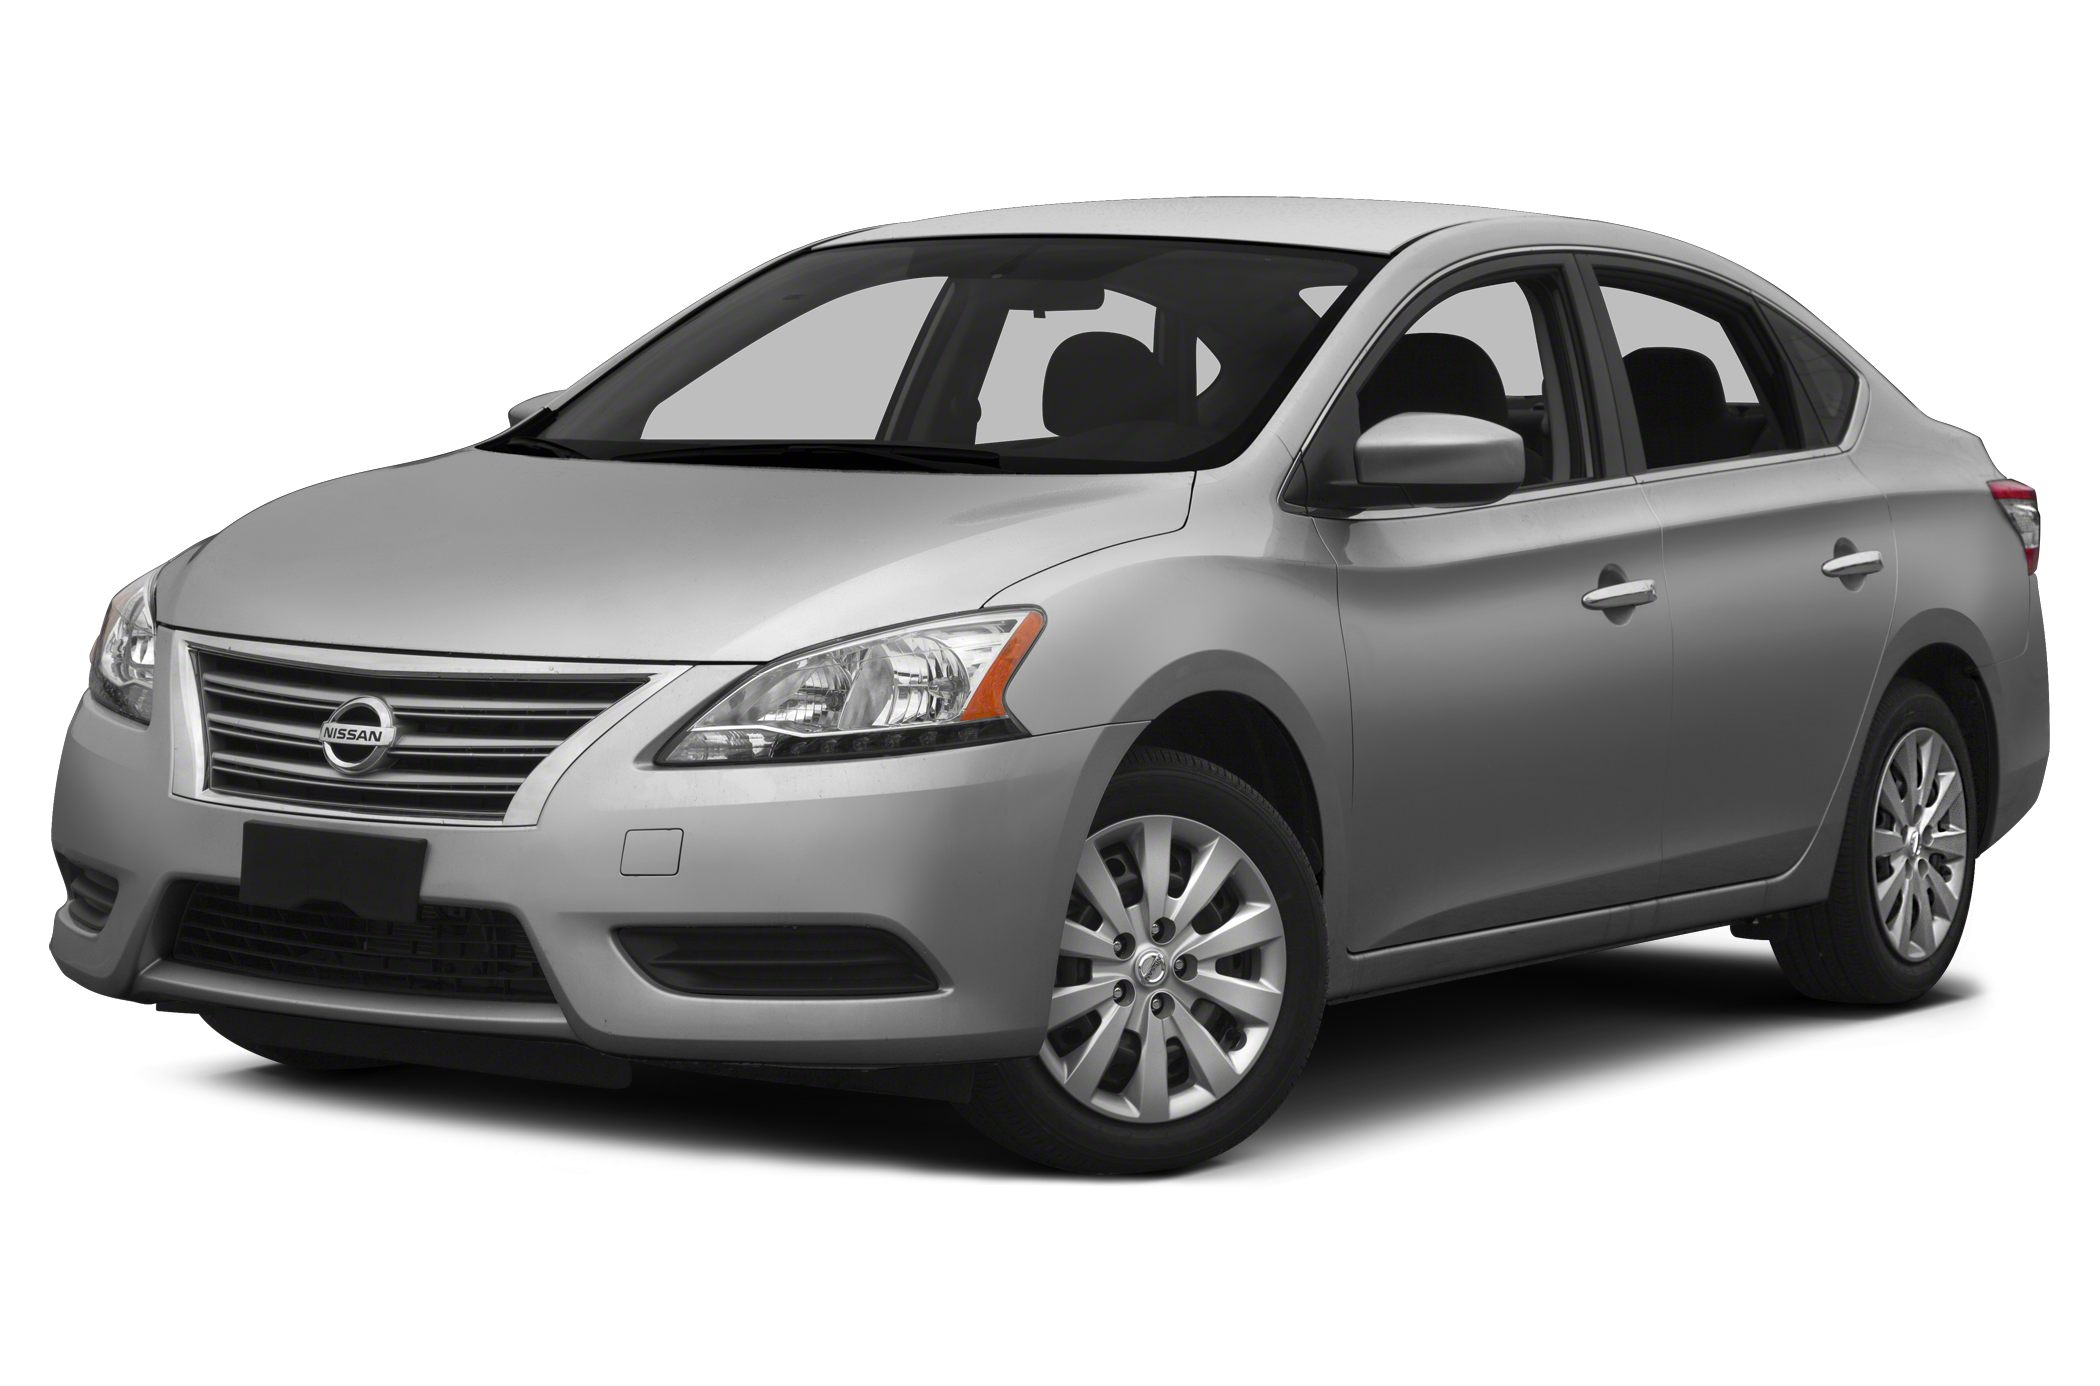 2013 Nissan Sentra S 1 OWNER  CLEAN CARFAX REPORT  One of the best things ab